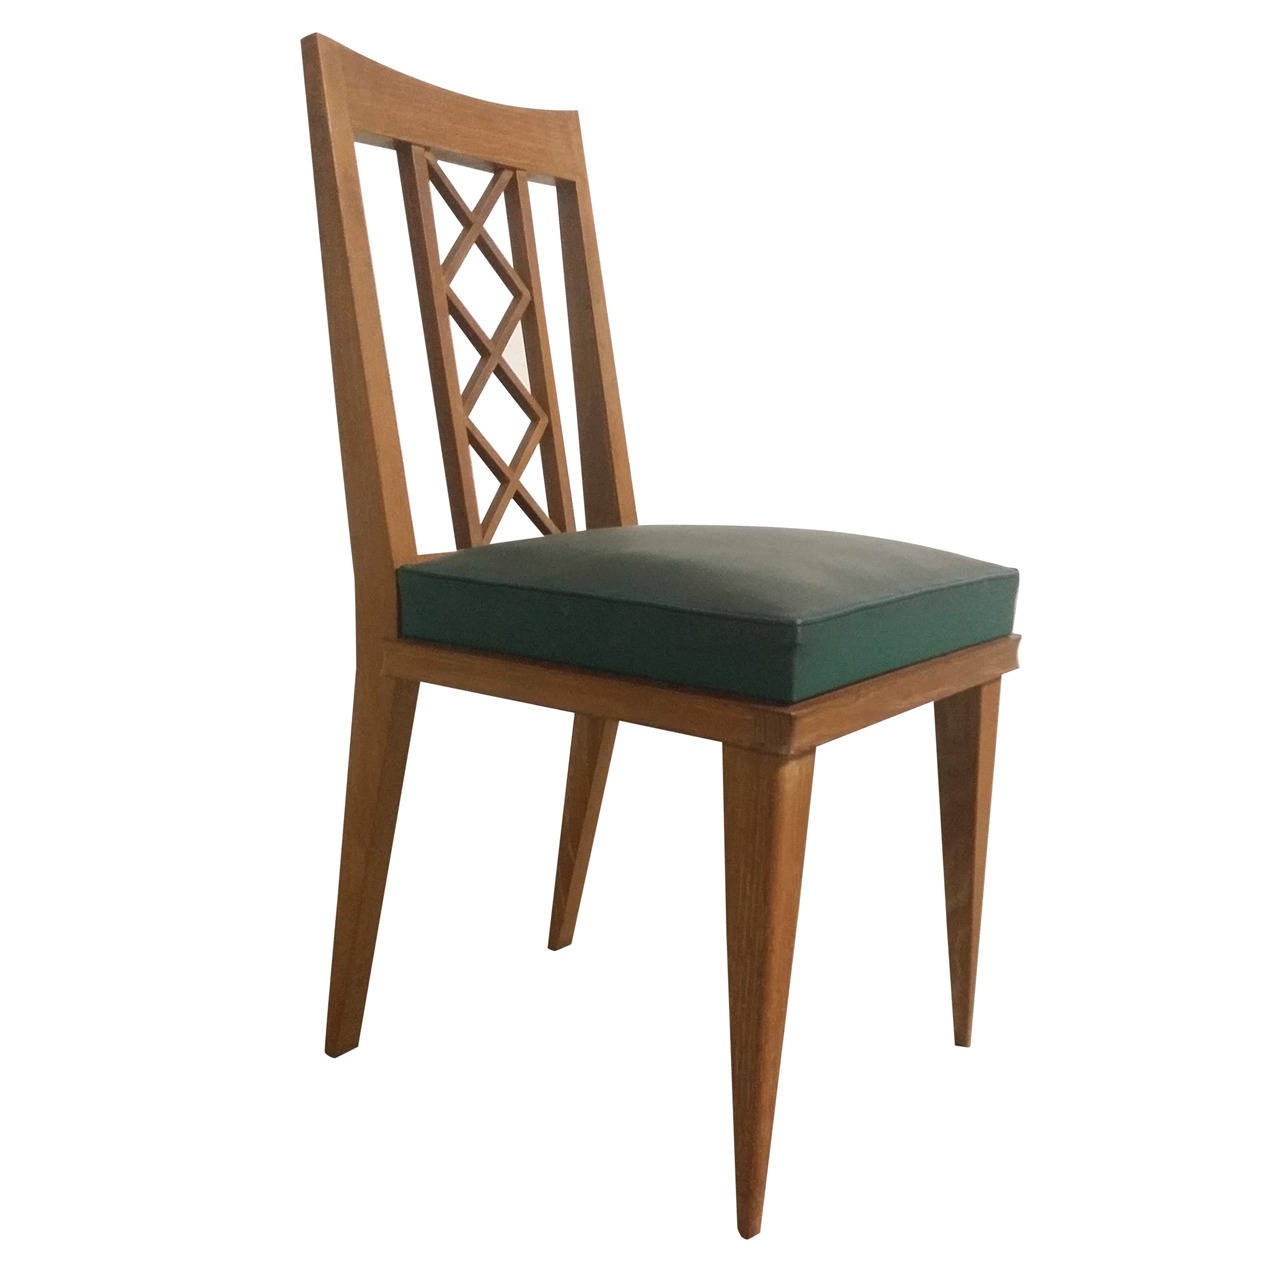 Elegant single oak 1950 39 s french chair in the style of for 1950s chair styles